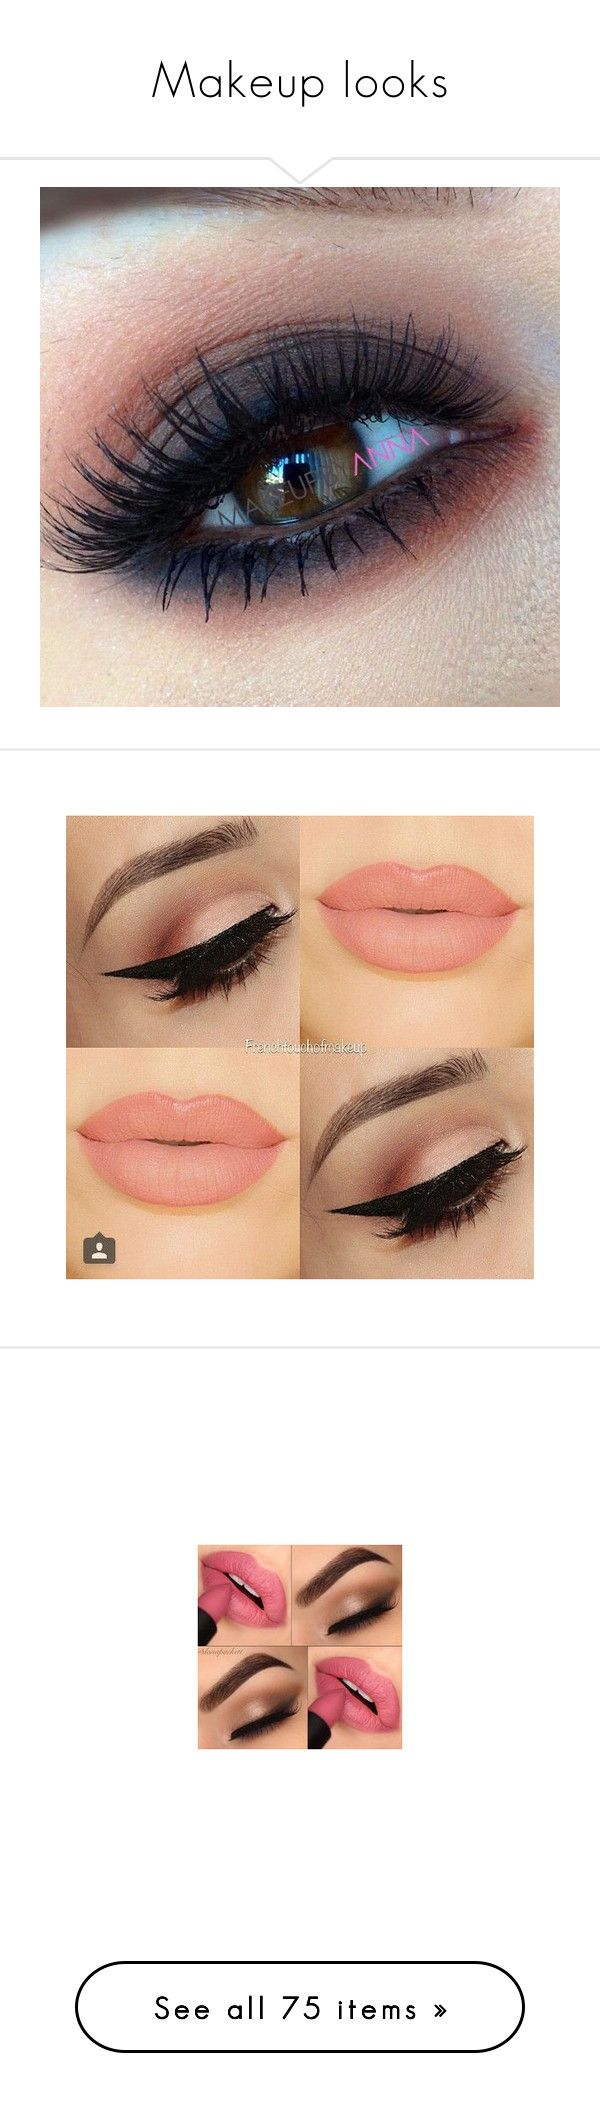 """""""Makeup looks"""" by veronicamcmahon ❤ liked on Polyvore featuring beauty products, makeup, eye makeup, eyes, eyeshadow, face makeup, lips, beauty, filler and eyebrow cosmetics"""